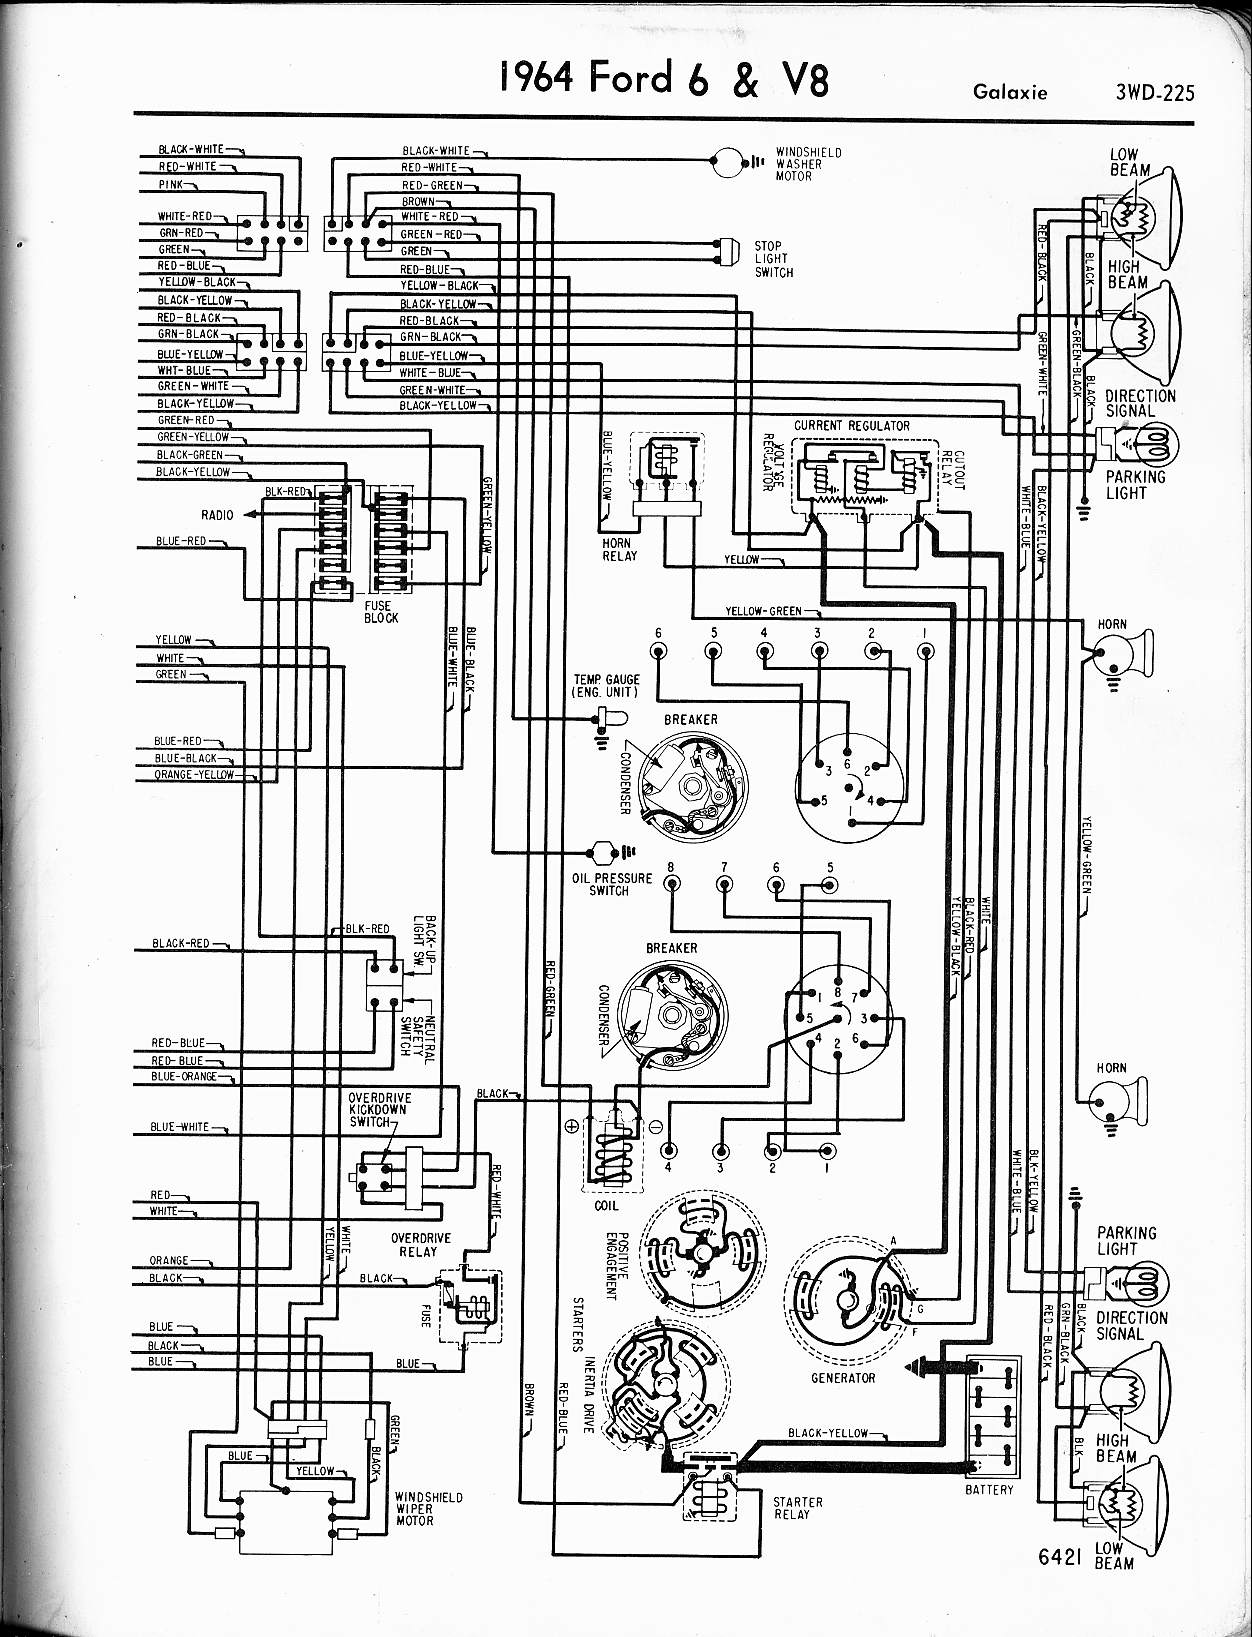 1963 ford generator wiring diagram charging question - ford muscle forums : ford muscle cars ... 1963 ford van wiring diagram #14